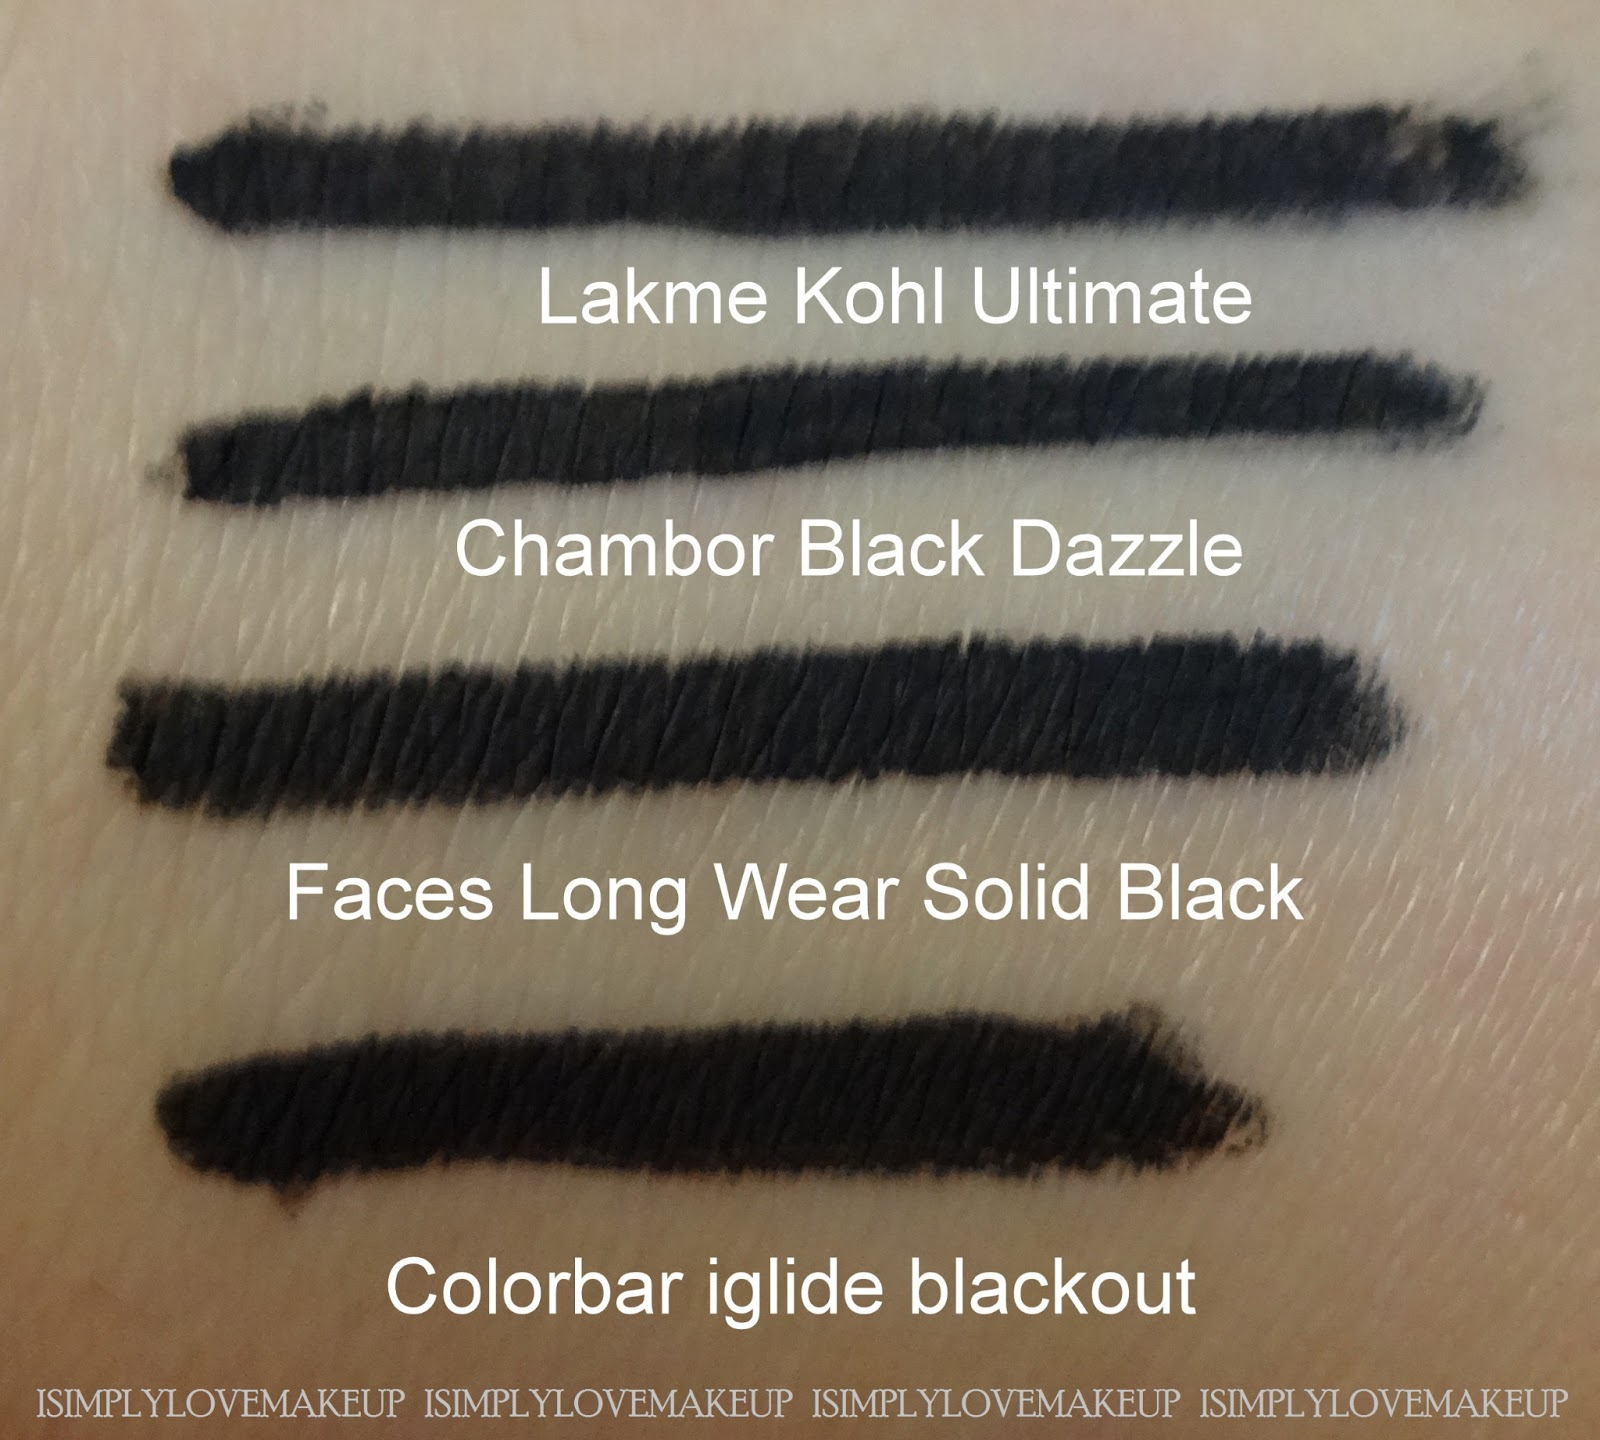 Absolute Kohl Ultimate by lakme #10